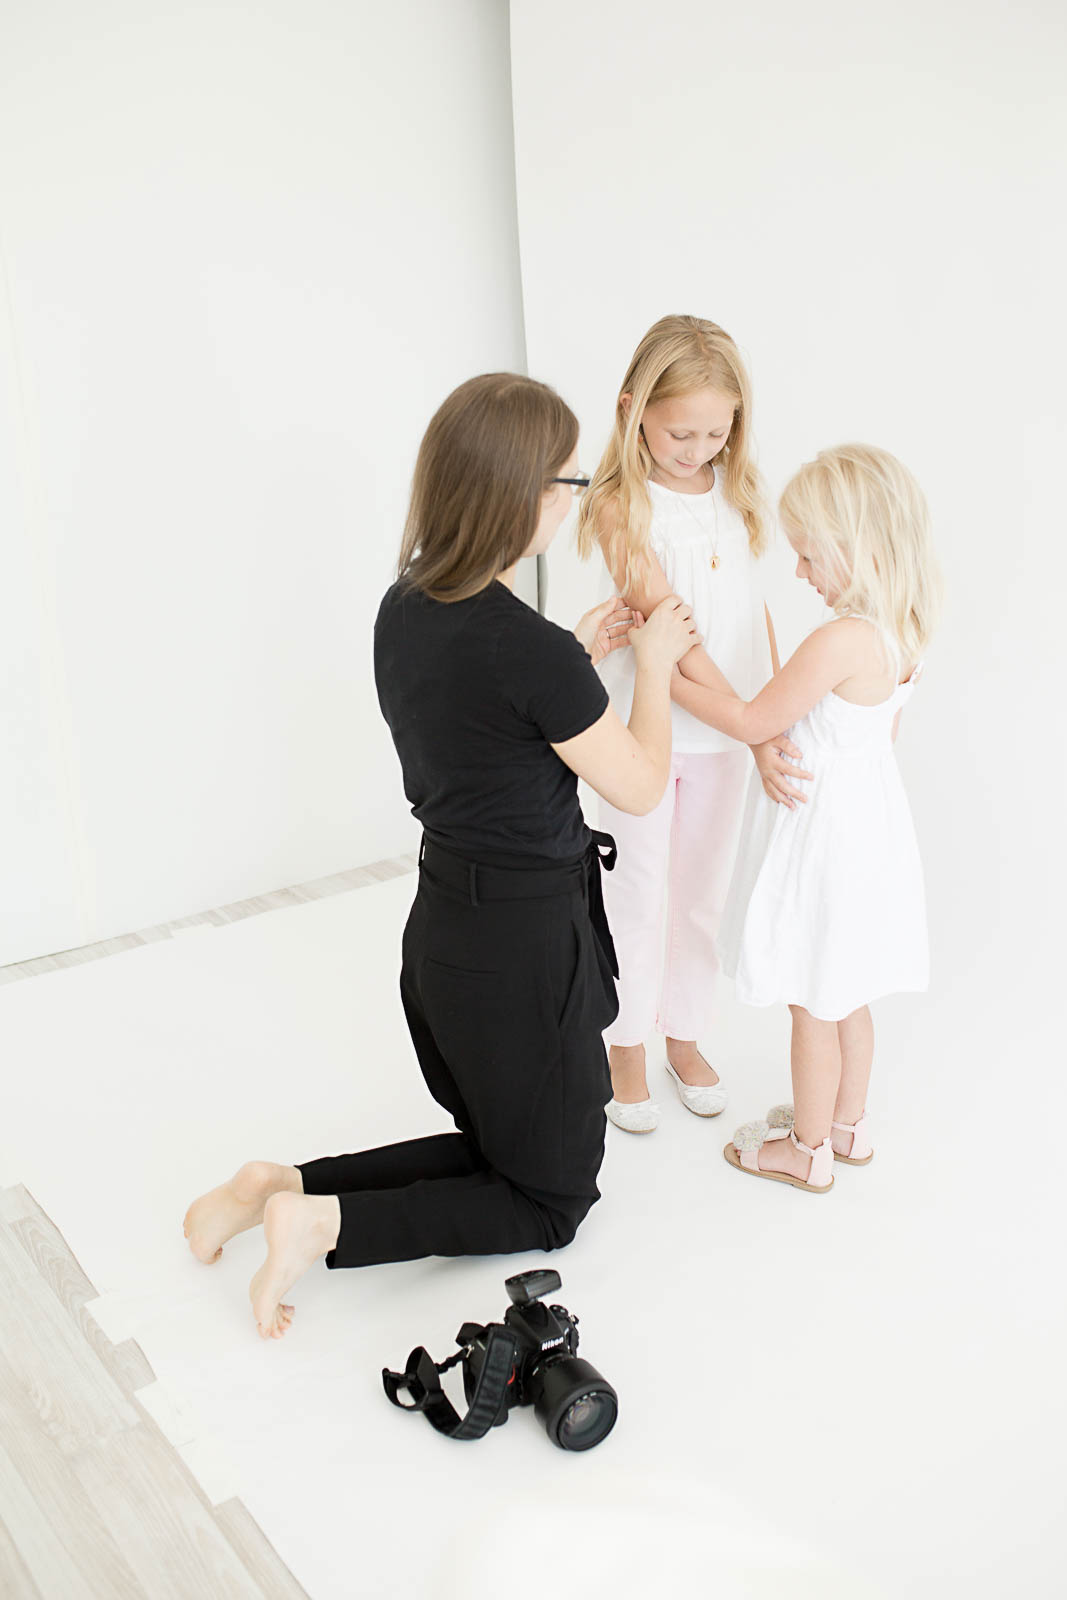 Nataliya Lalor, owner and photographer of N. Lalor Photography, making slight adjustments to the pose of two young girls. Photo of N. Lalor Photography Studio in Greenwich, Connecticut.